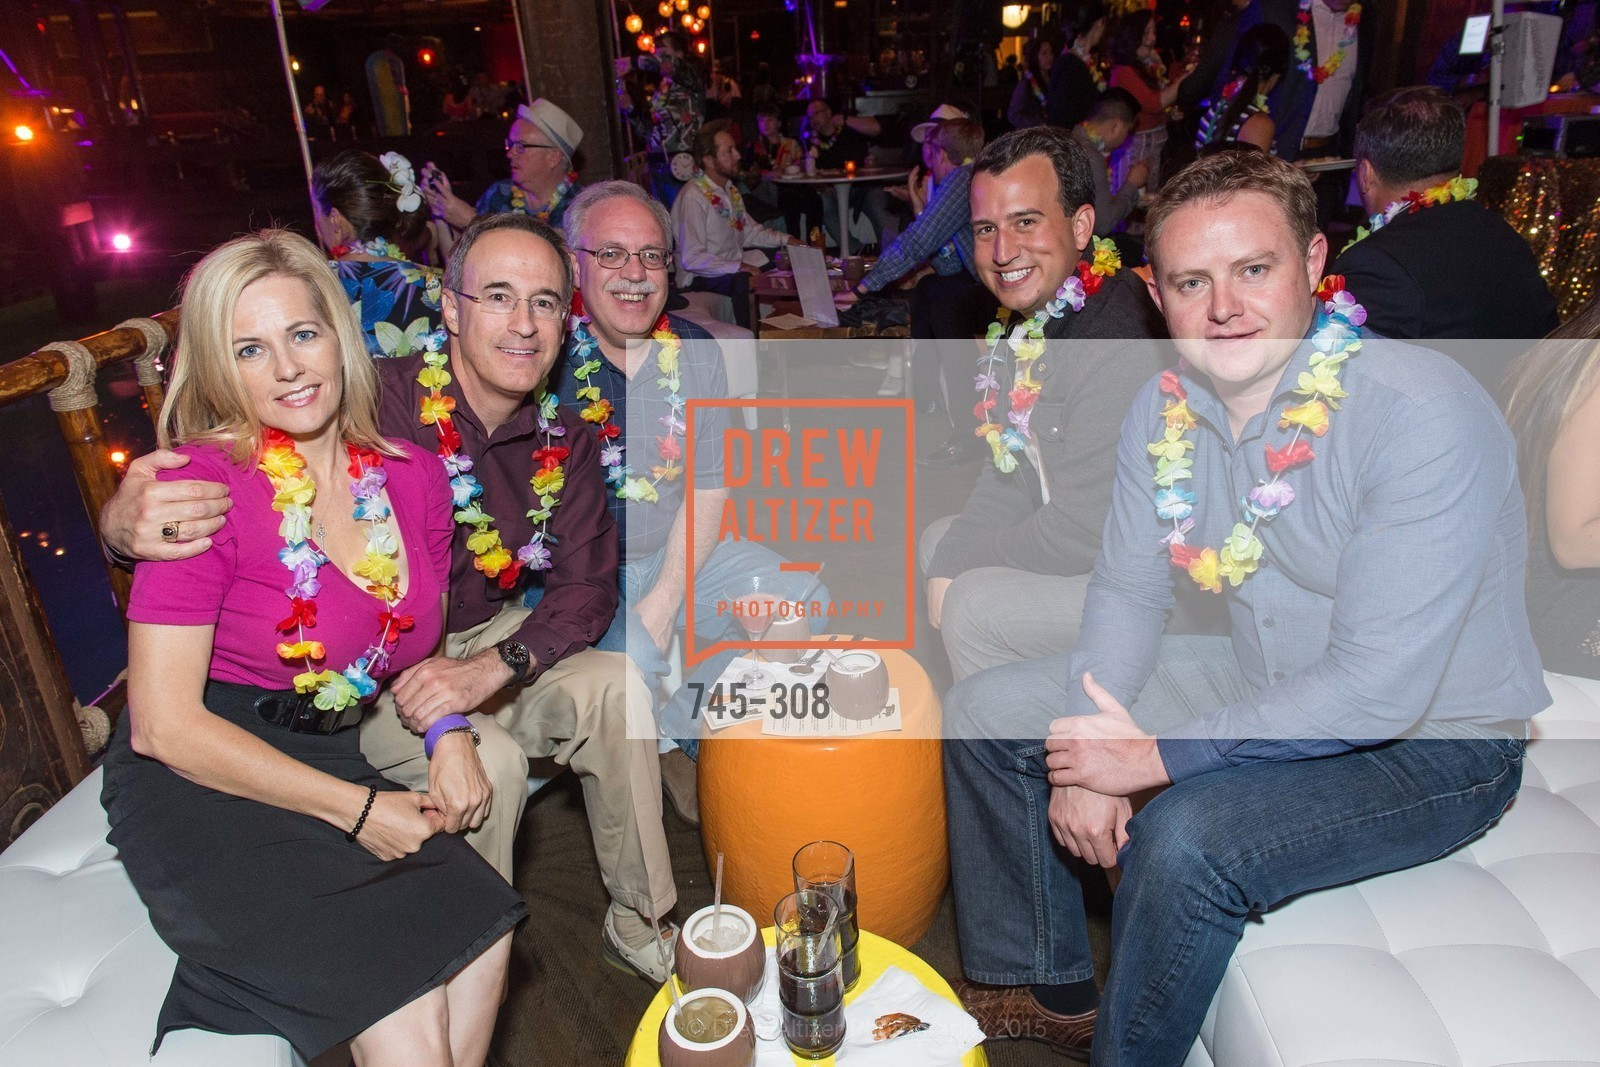 Jim Gilligan, Alex Williams, James Willoughby, Tonga Room & Hurricane Bar Celebrates 70 Years of Tiki Glory, Fairmont, September 23rd, 2015,Drew Altizer, Drew Altizer Photography, full-service agency, private events, San Francisco photographer, photographer california